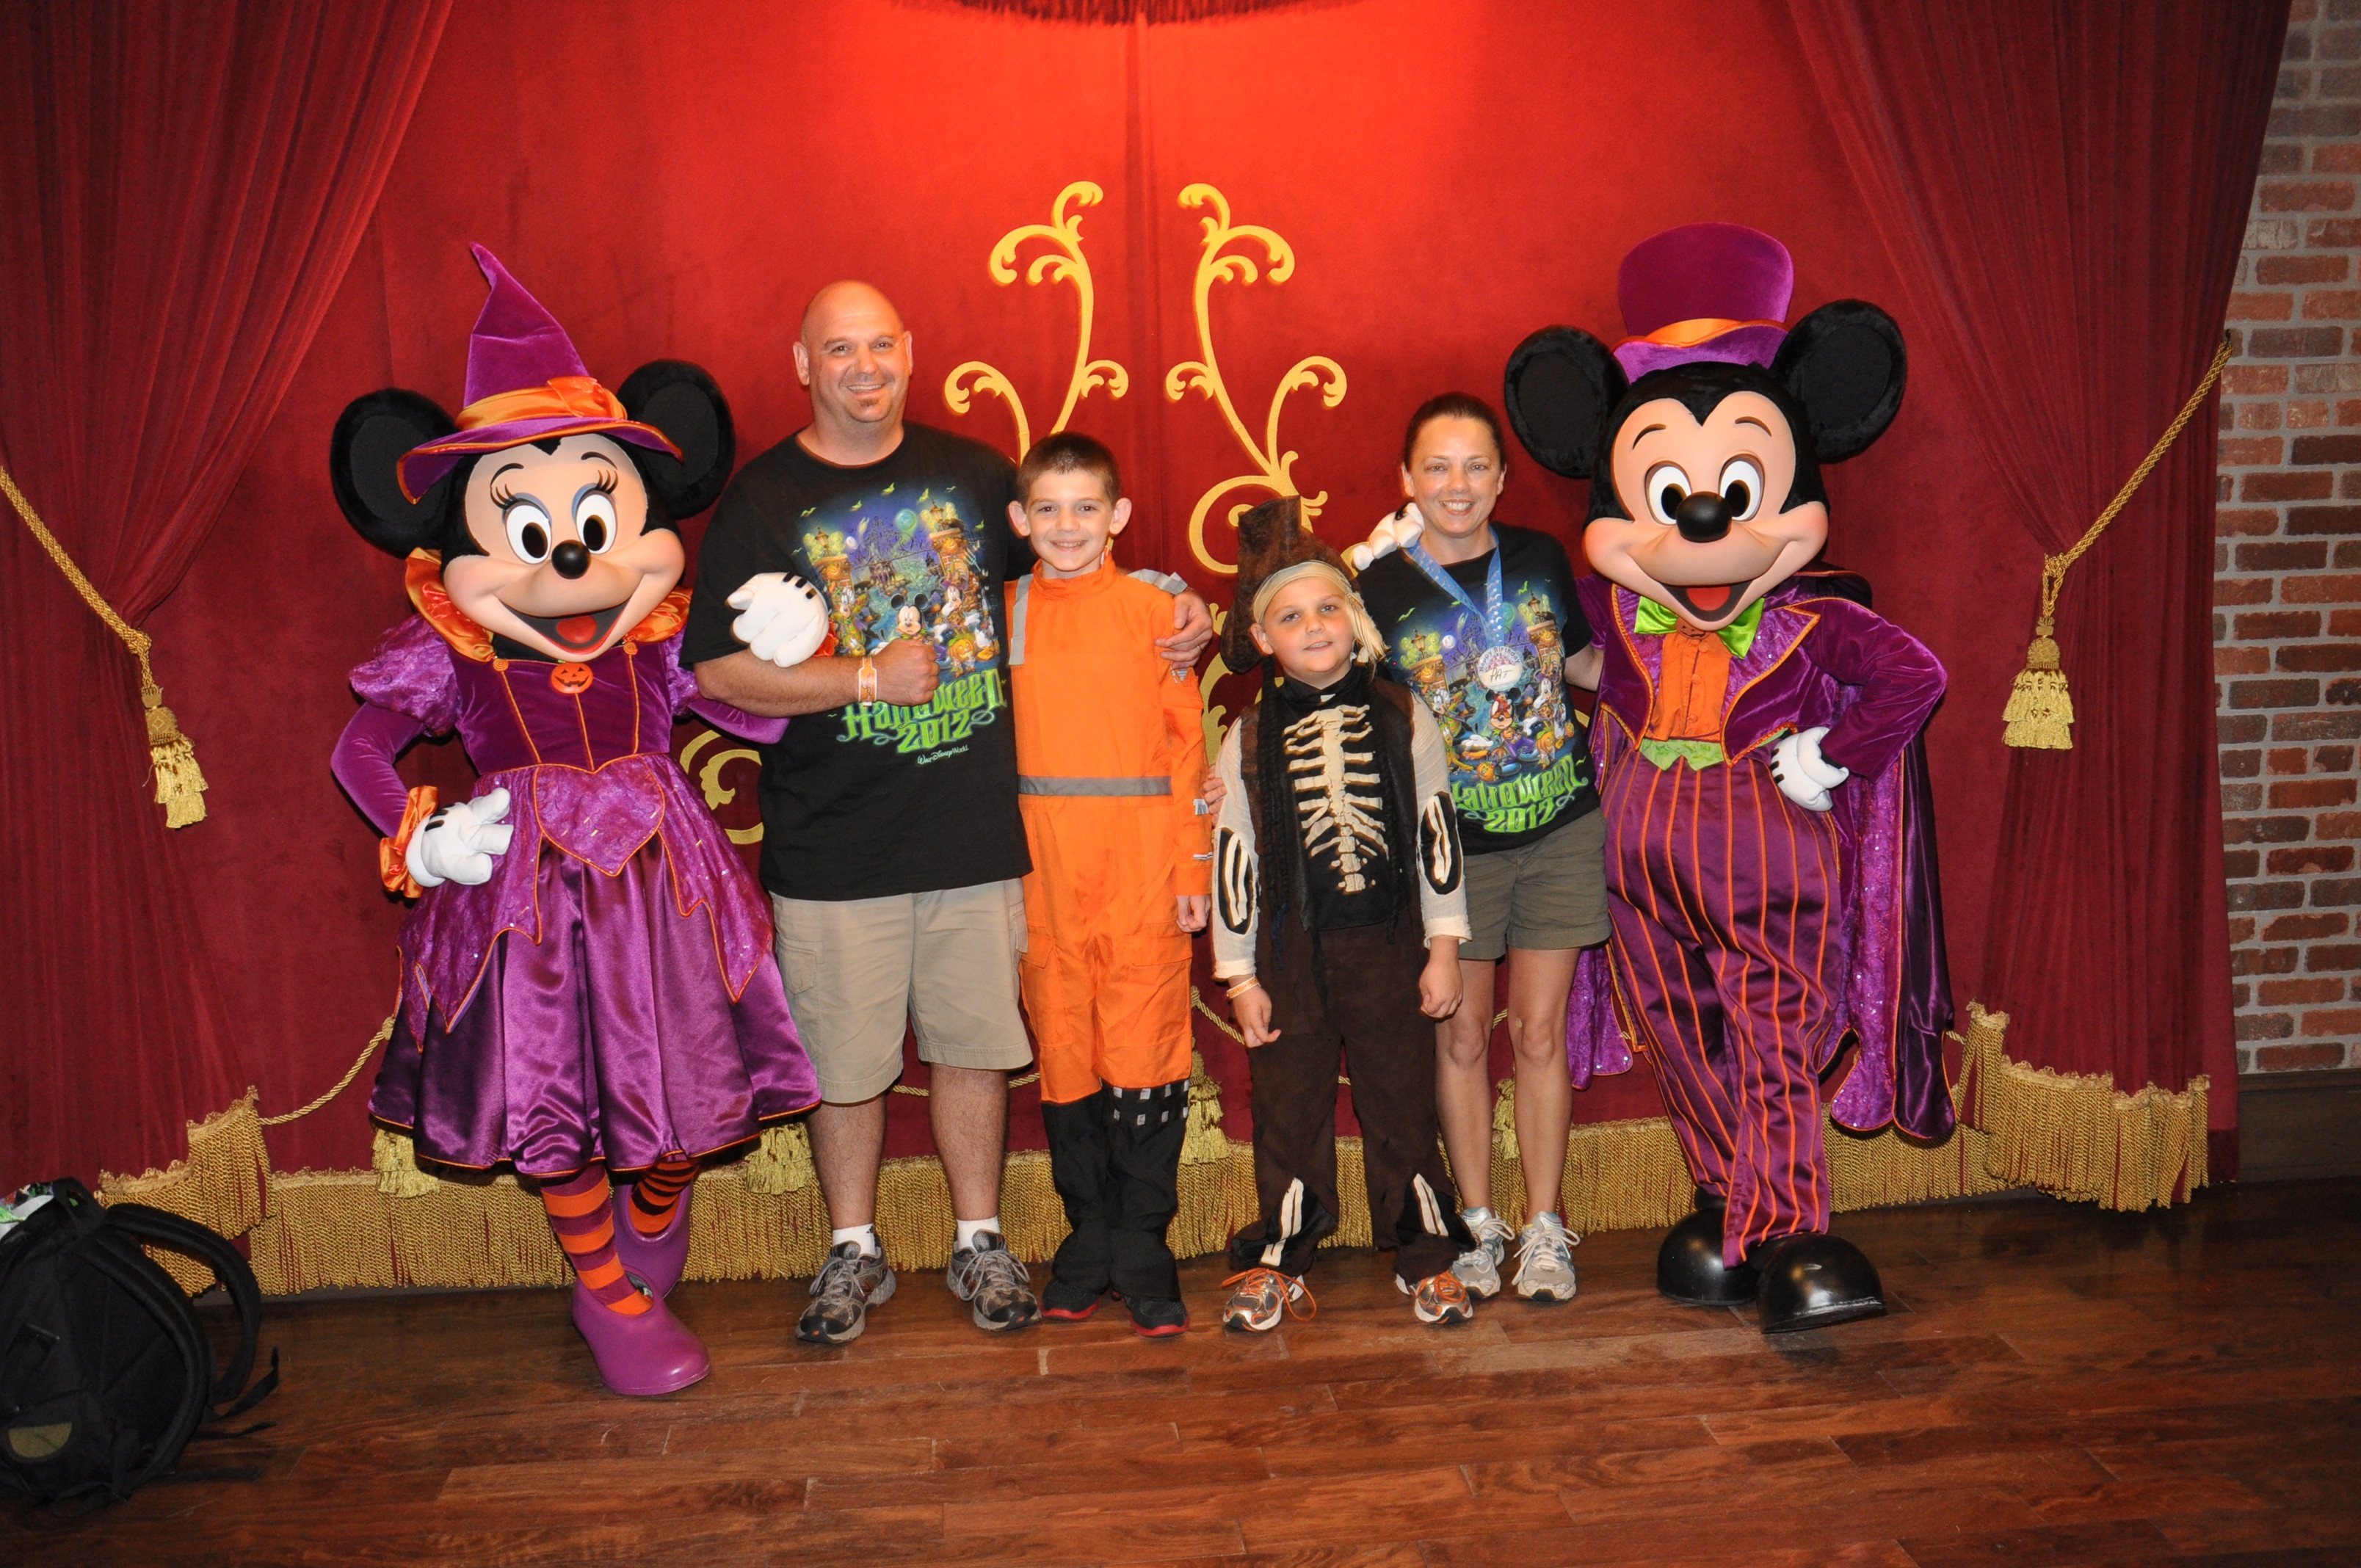 Join the Divas/Devos for a Halloween Photo Contest and a Chance to Win a Disney Gift Card!